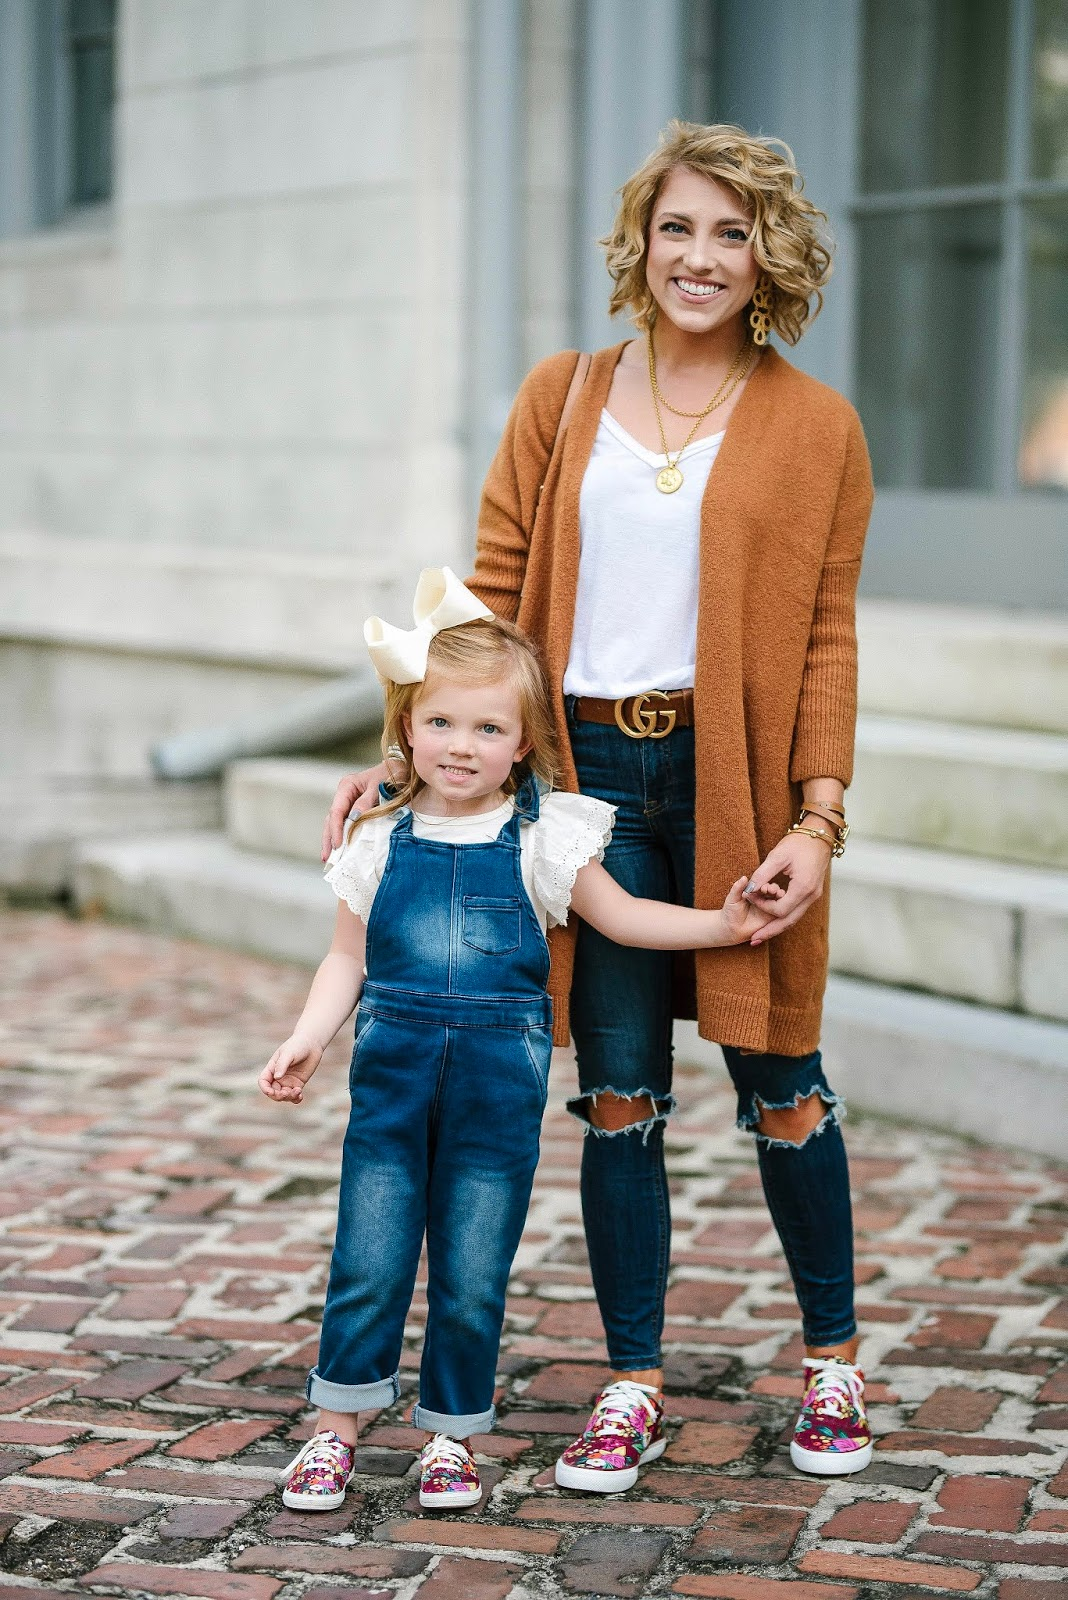 Mommy & Me Style: Twinning in Keds x Rifle Paper Co. Sneakers - Something Delightful Blog